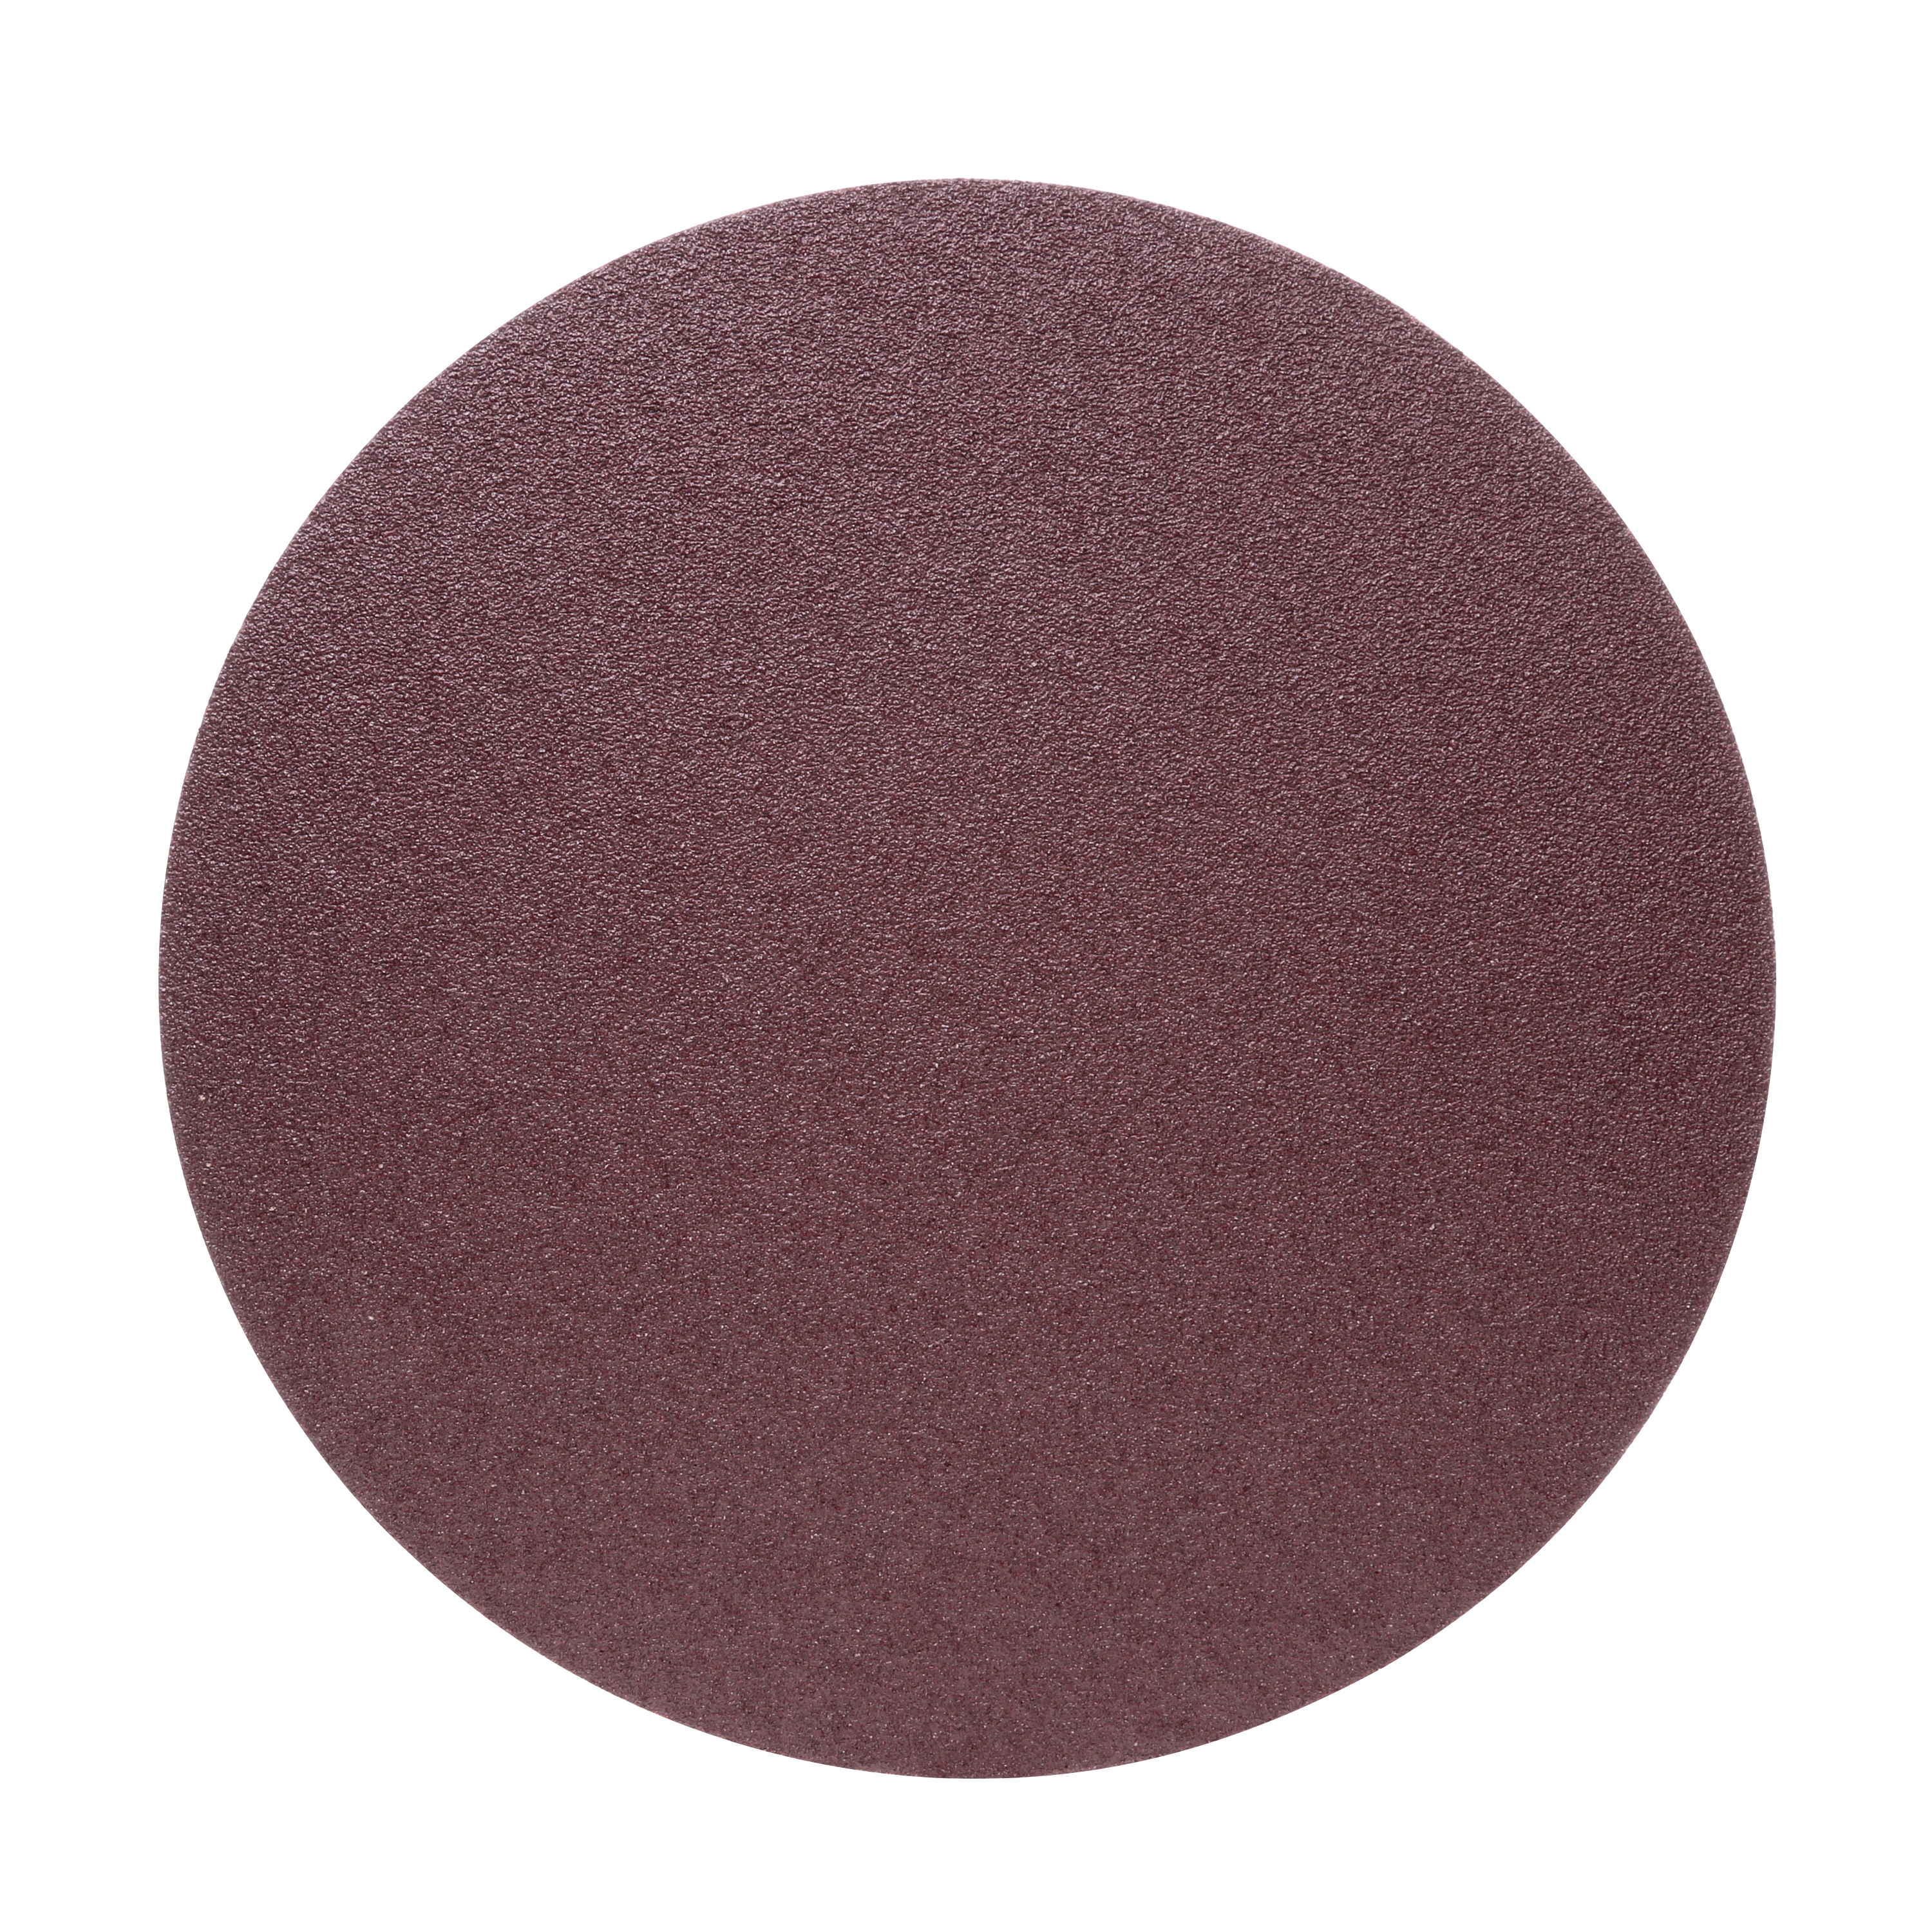 3M™ 051144-88890 Heavy Duty PSA Close Coated Abrasive Disc, 16 in Dia, 36 Grit, Very Coarse Grade, Aluminum Oxide Abrasive, Cloth Backing